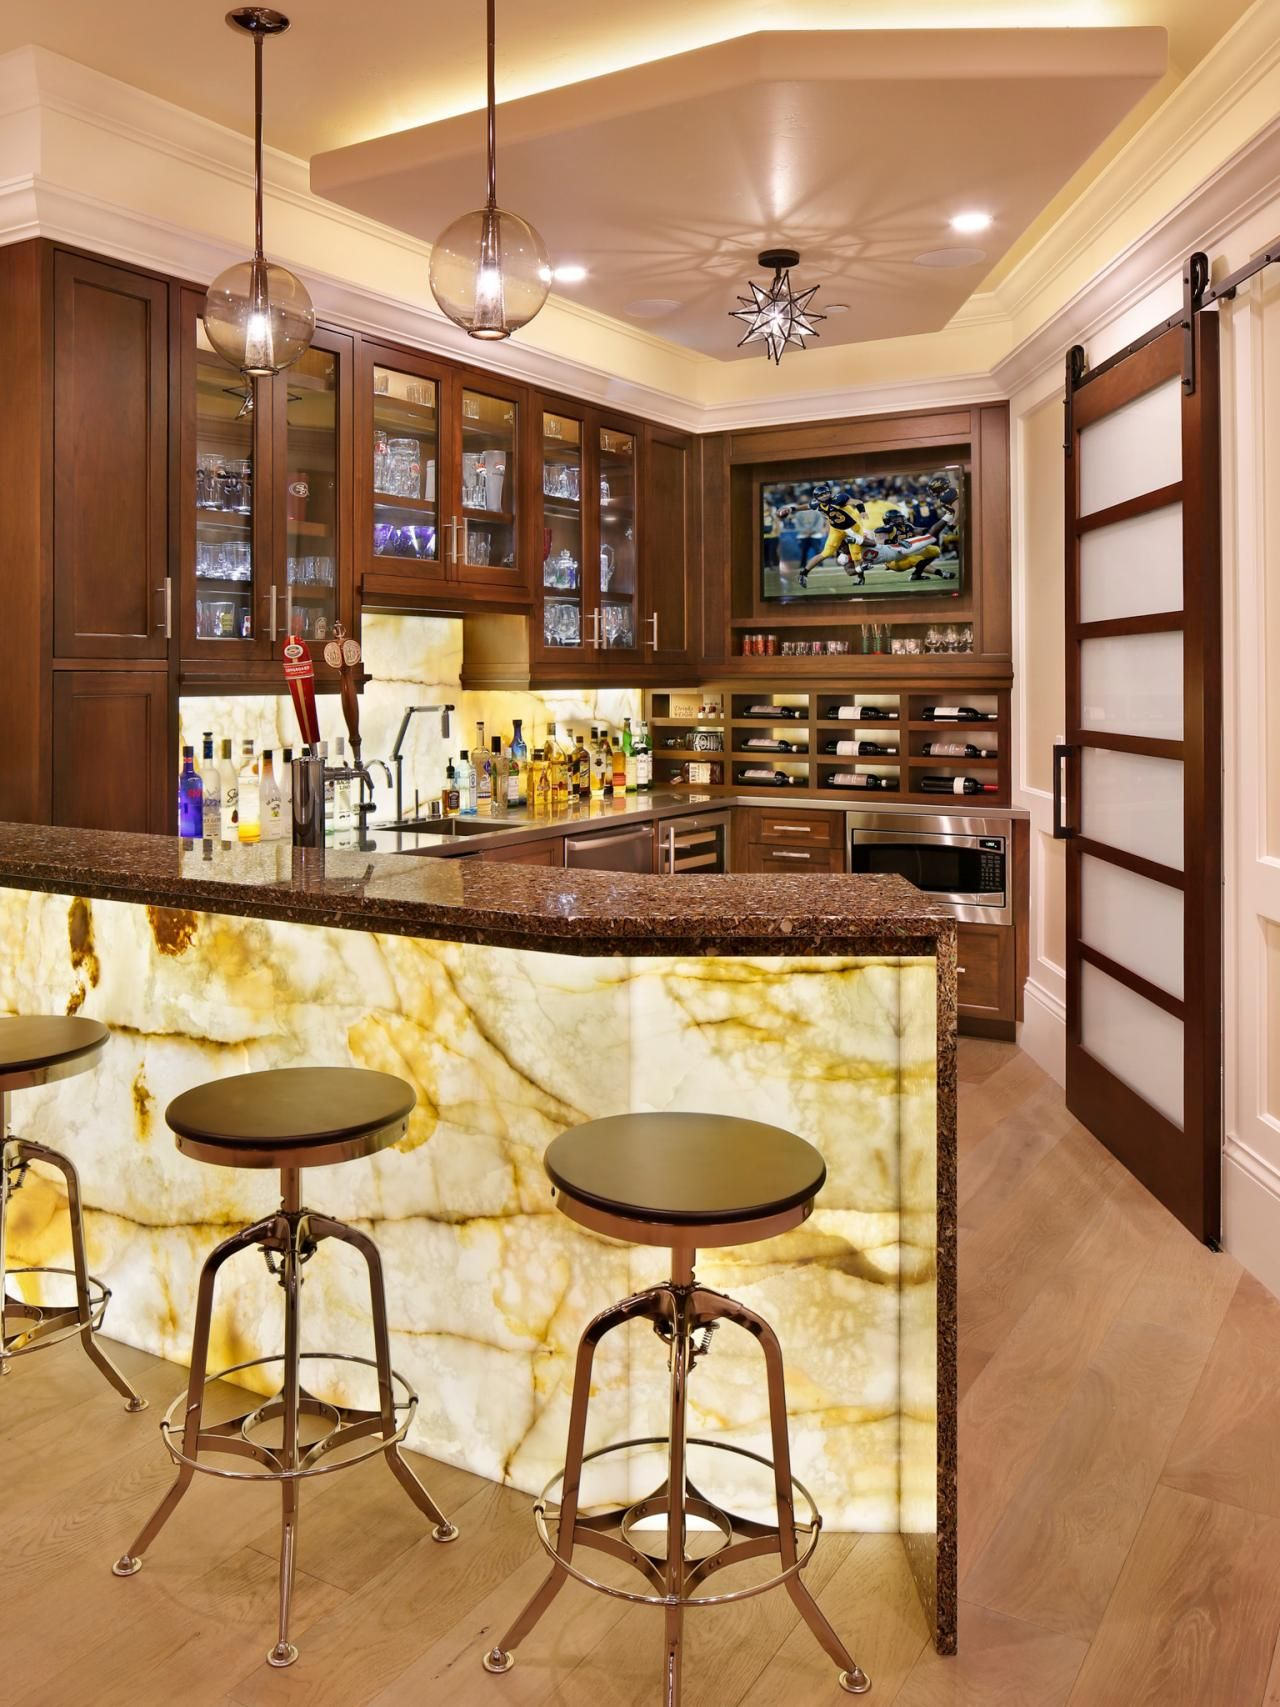 basement sports bar ideas. Dad Got The Sports Bar He Craved, Wrapped In Stylish And Sophisticated Style Mom Desired For Space. Basement Ideas N